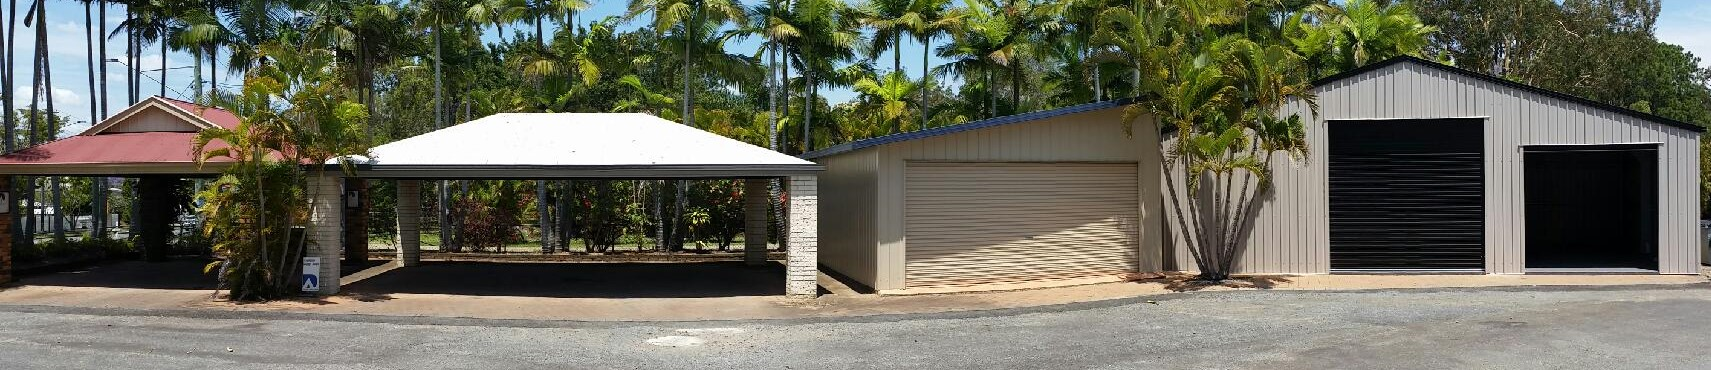 welcome to dondex australian garages carports sheds wholesale